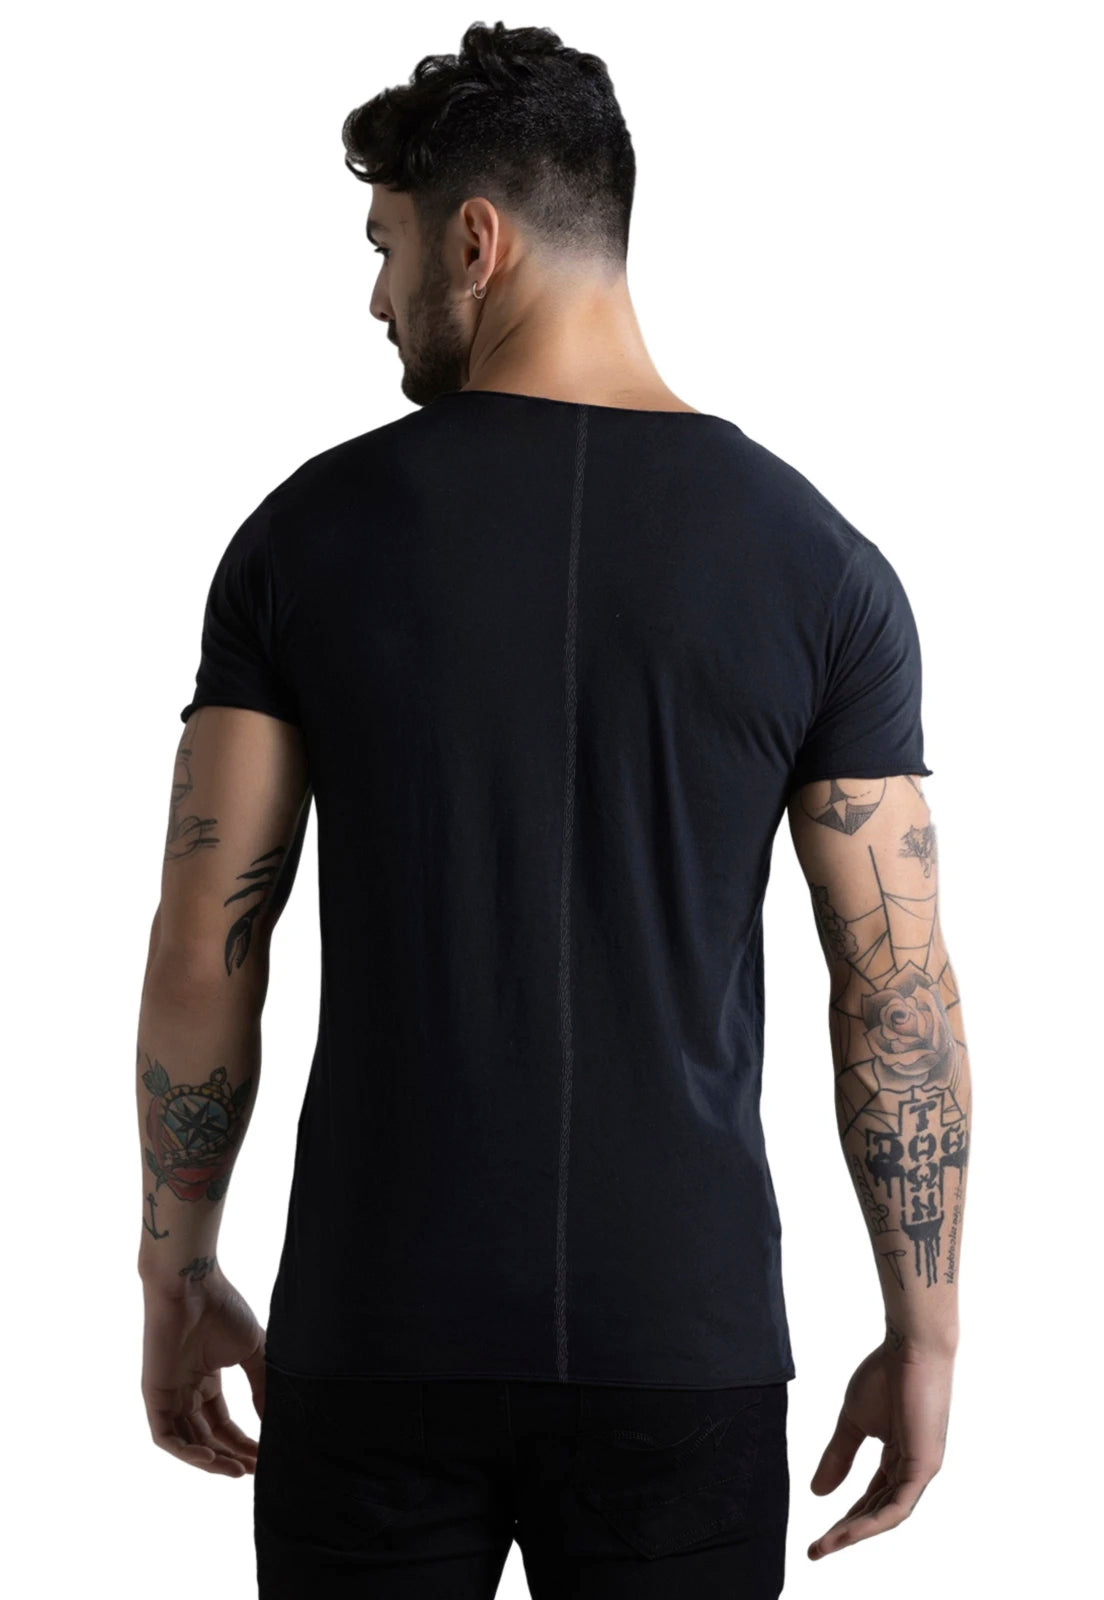 CAMISETA MASCULINA CORTE A FIO JOSS - BAD INFLUENCE